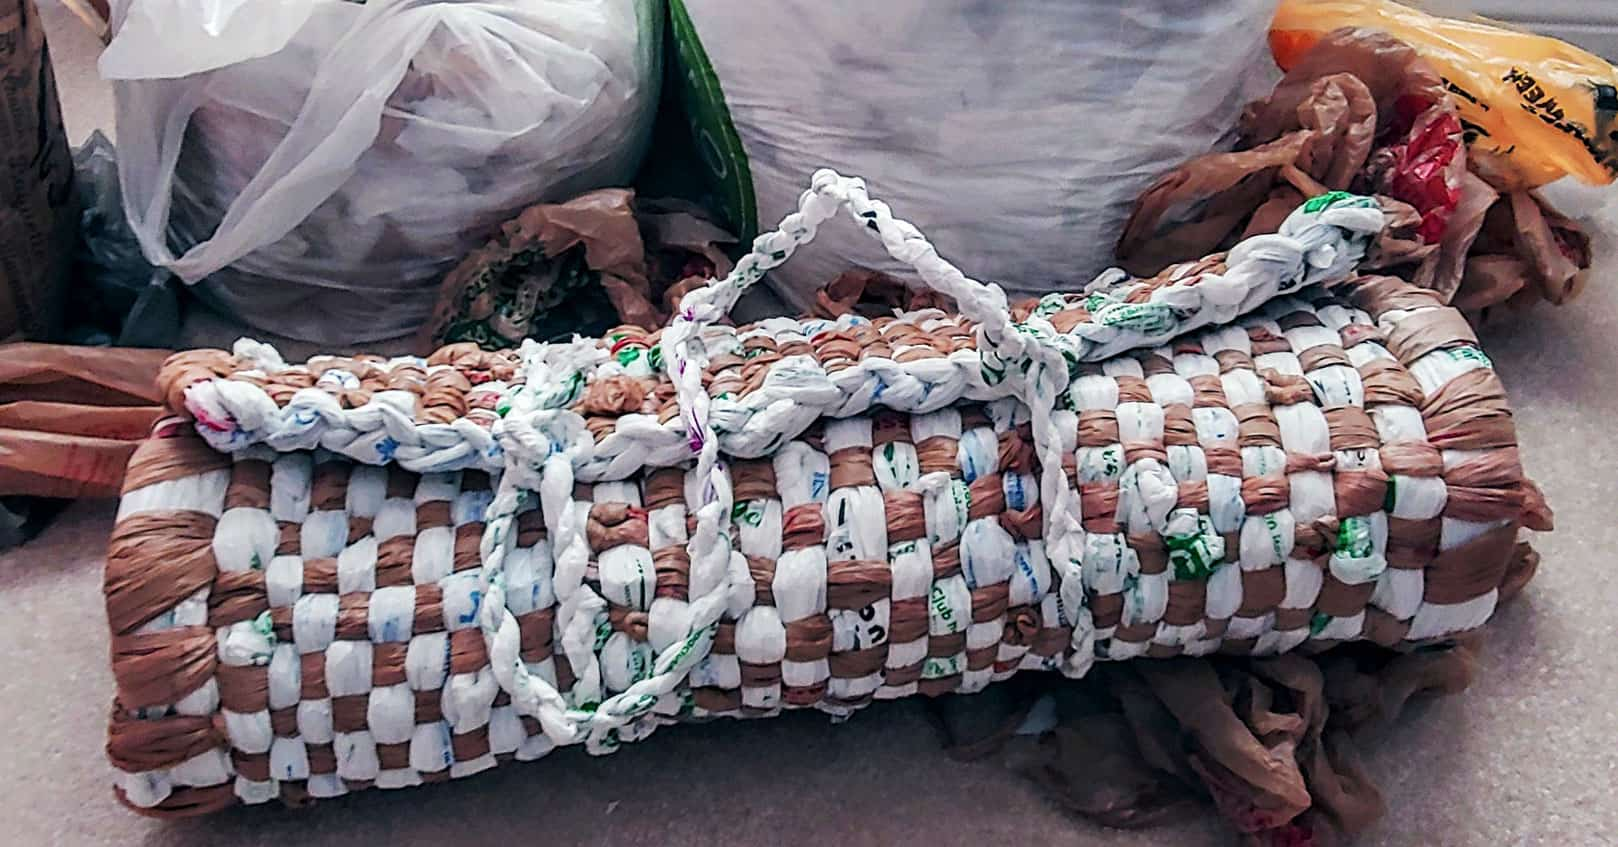 7 Steps To Making Sleeping Mats From Recycled Plastic Bags Teyla Rachel Branton